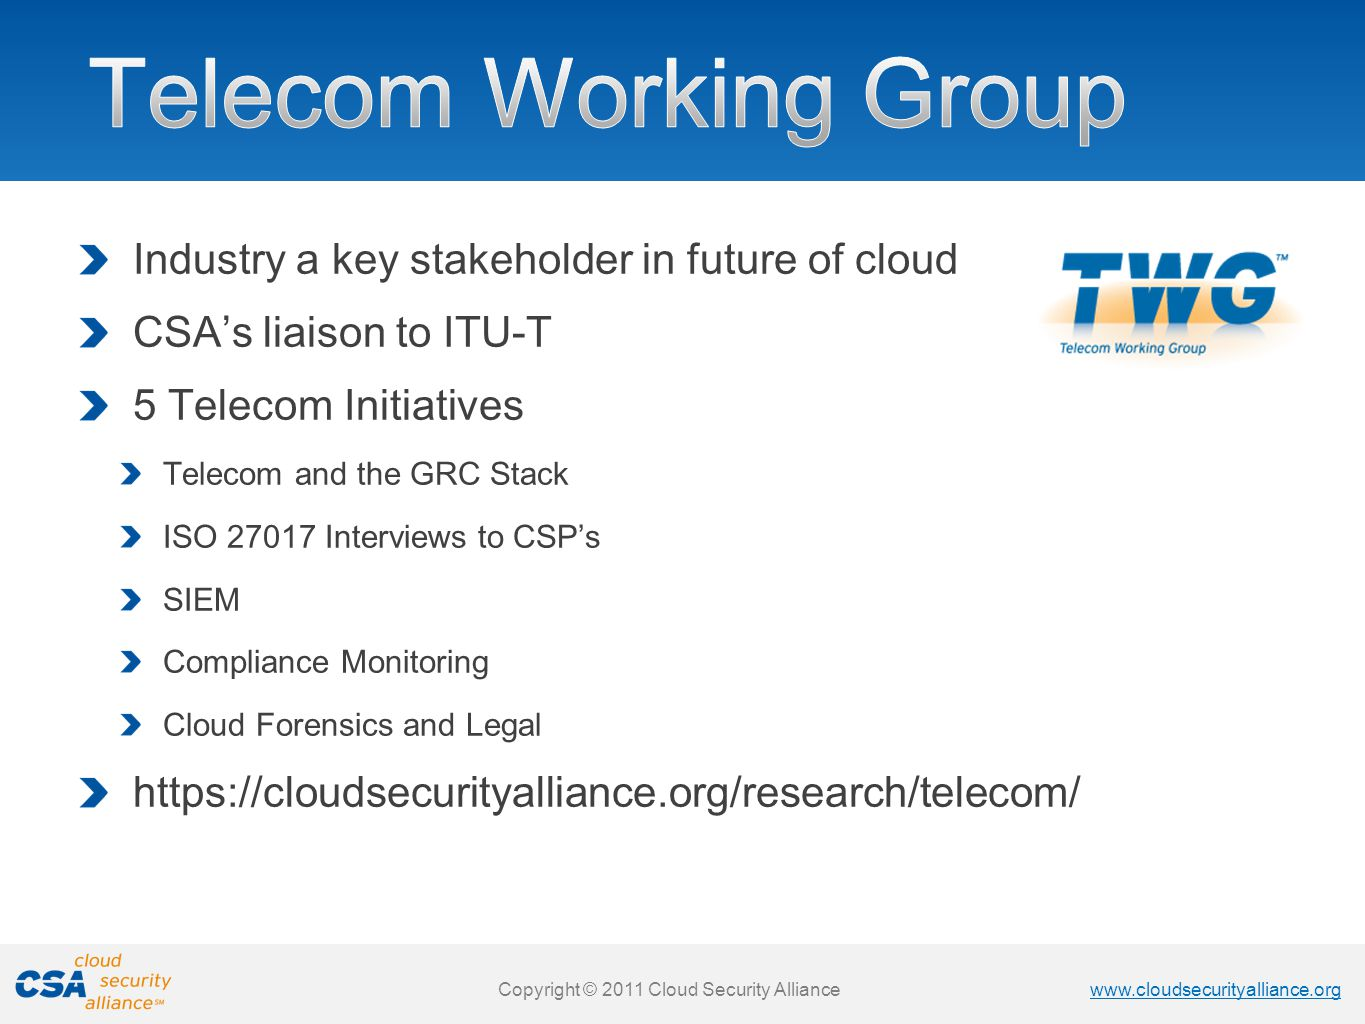 Telecom Working Group Industry a key stakeholder in future of cloud